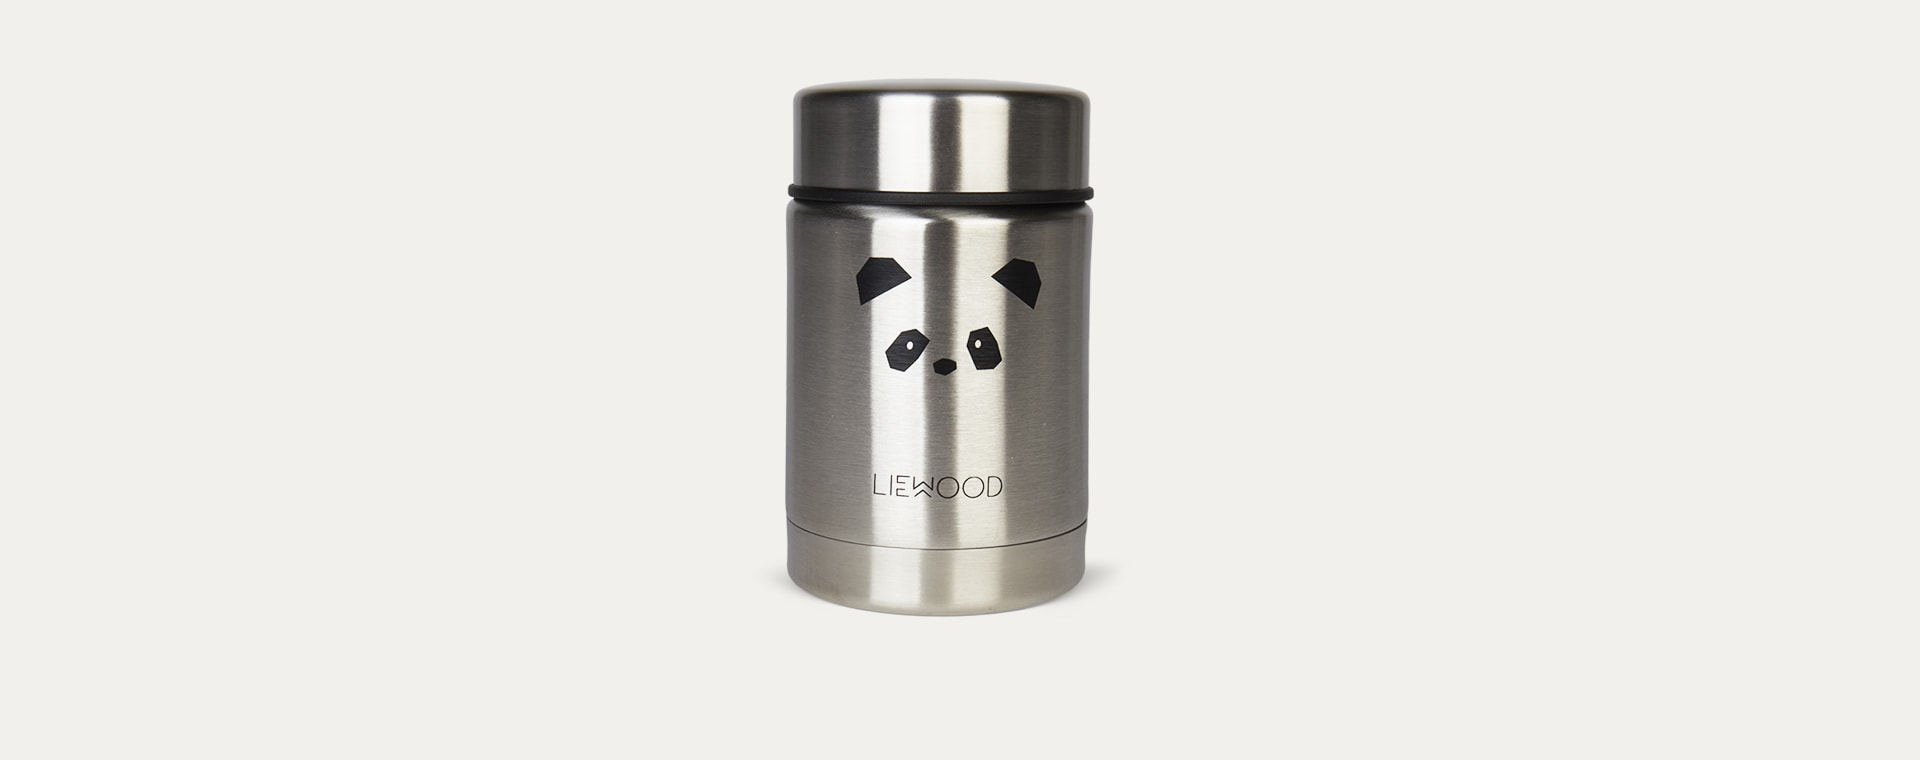 Panda Stainless Steel Liewood Nadja Food Jar